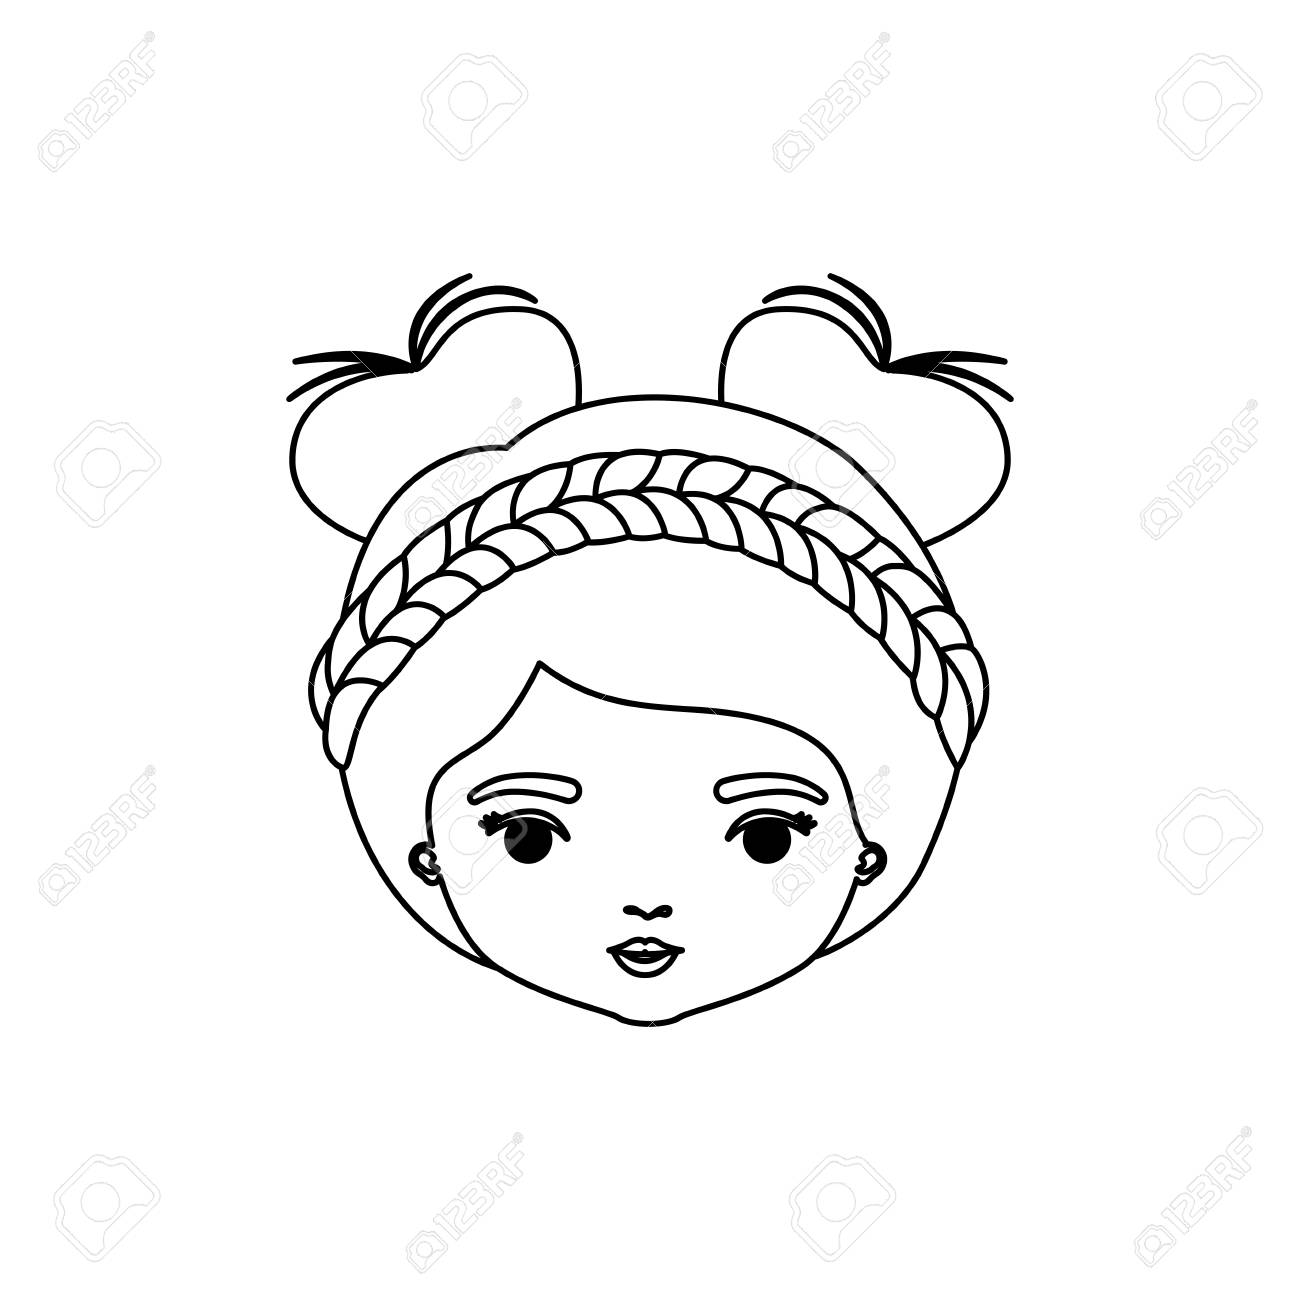 1300x1300 Monochrome Silhouette Of Caricature Front View Face Woman